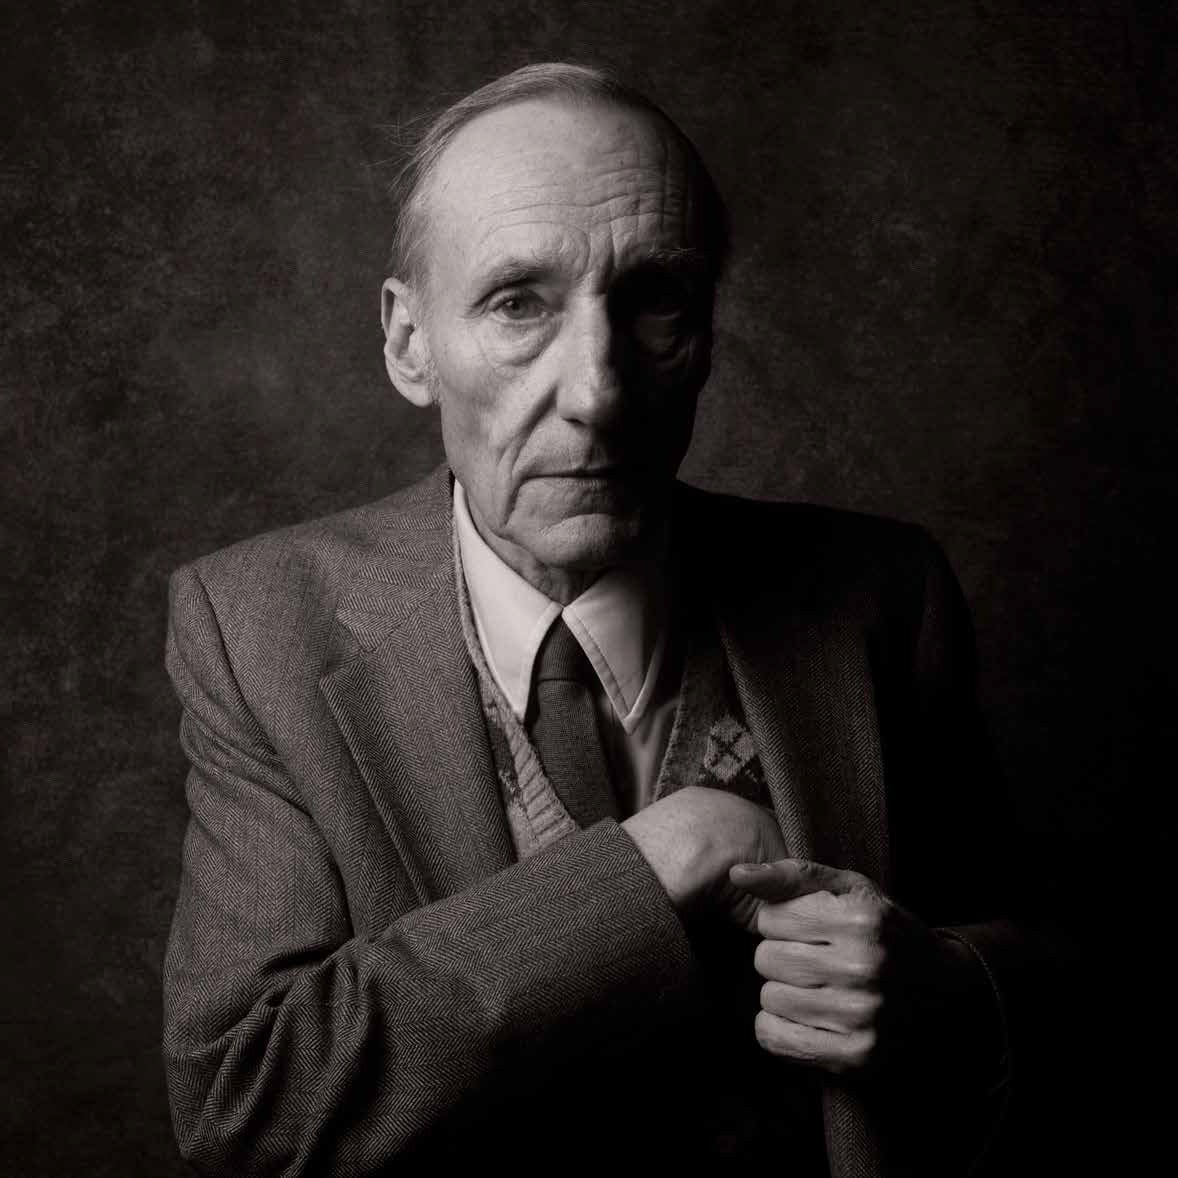 William burroughs 'naked lunch'